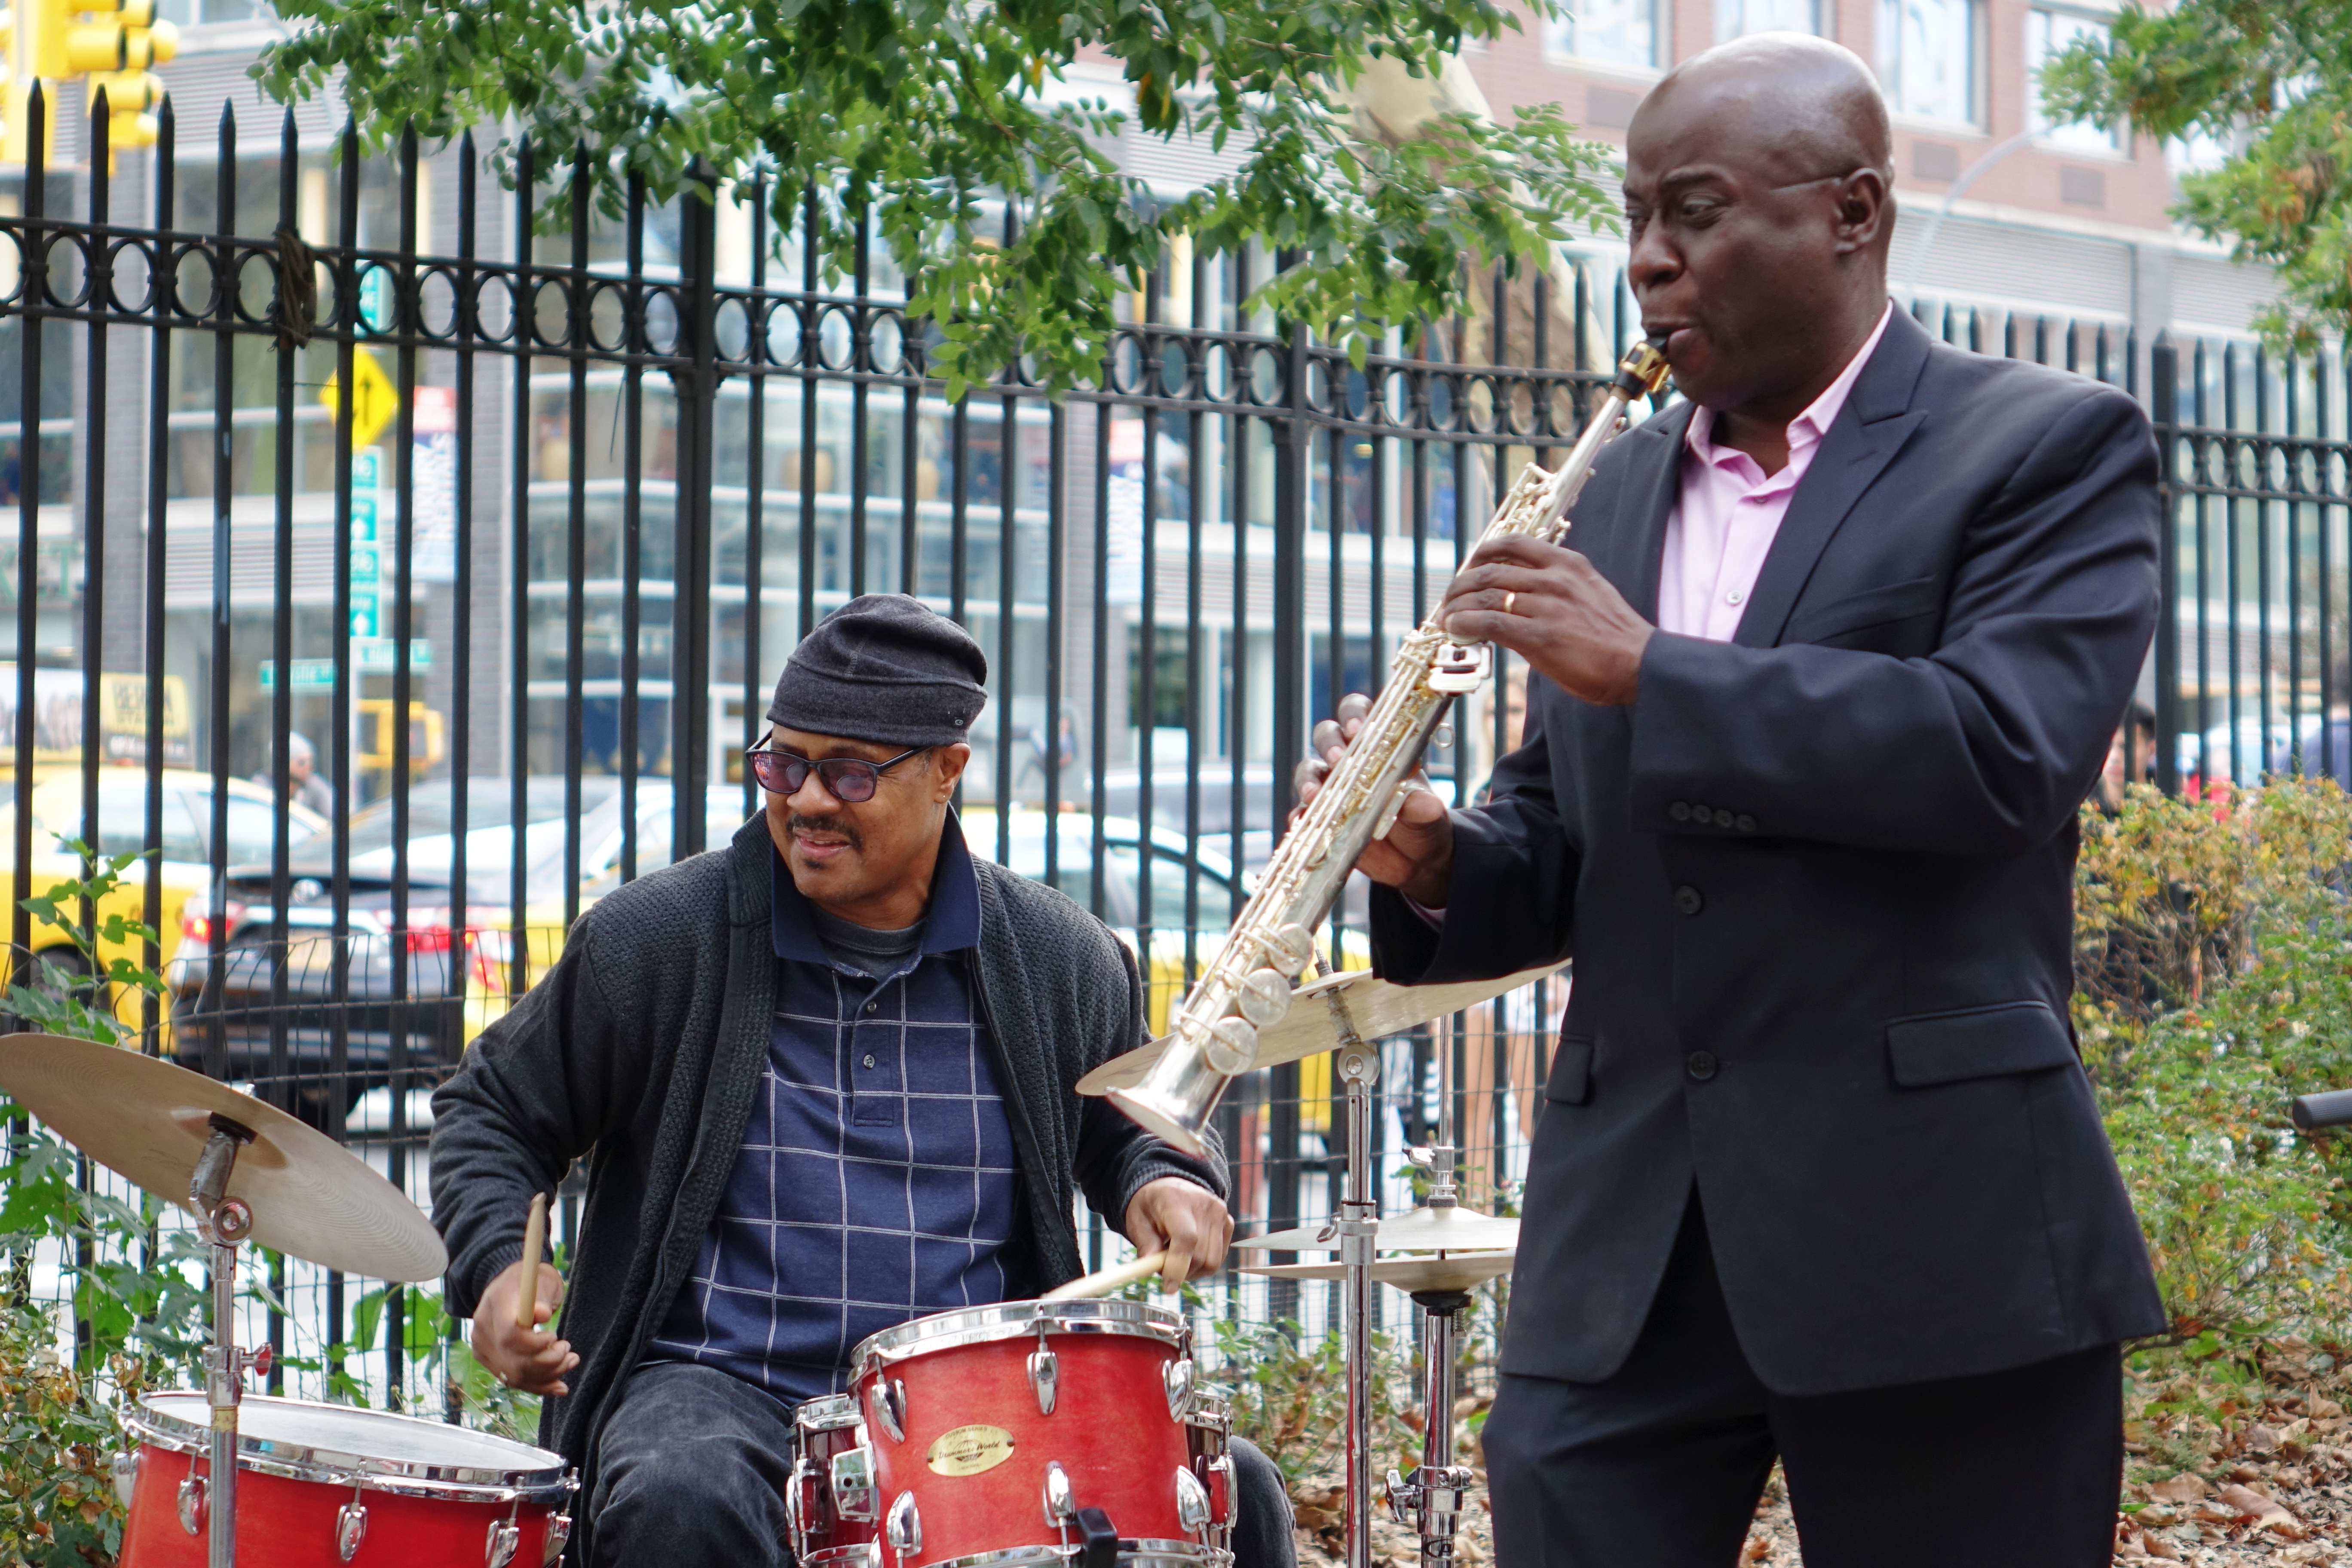 Reggie Nicholson and Sam Newsome at First Street Green, NYC in September 2017